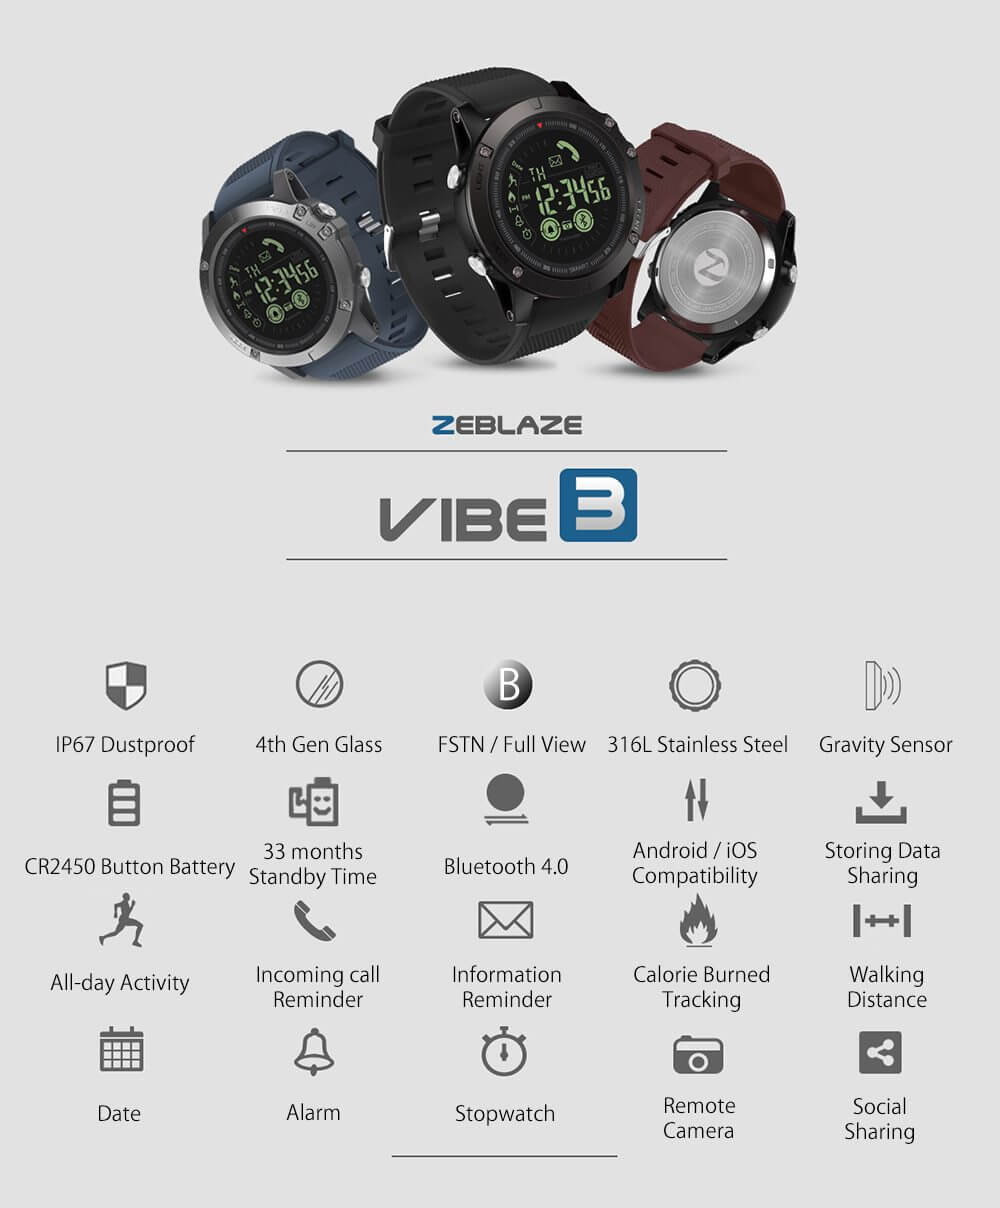 Zeblaze VIBE 3 Flagship Rugged Smartwatch